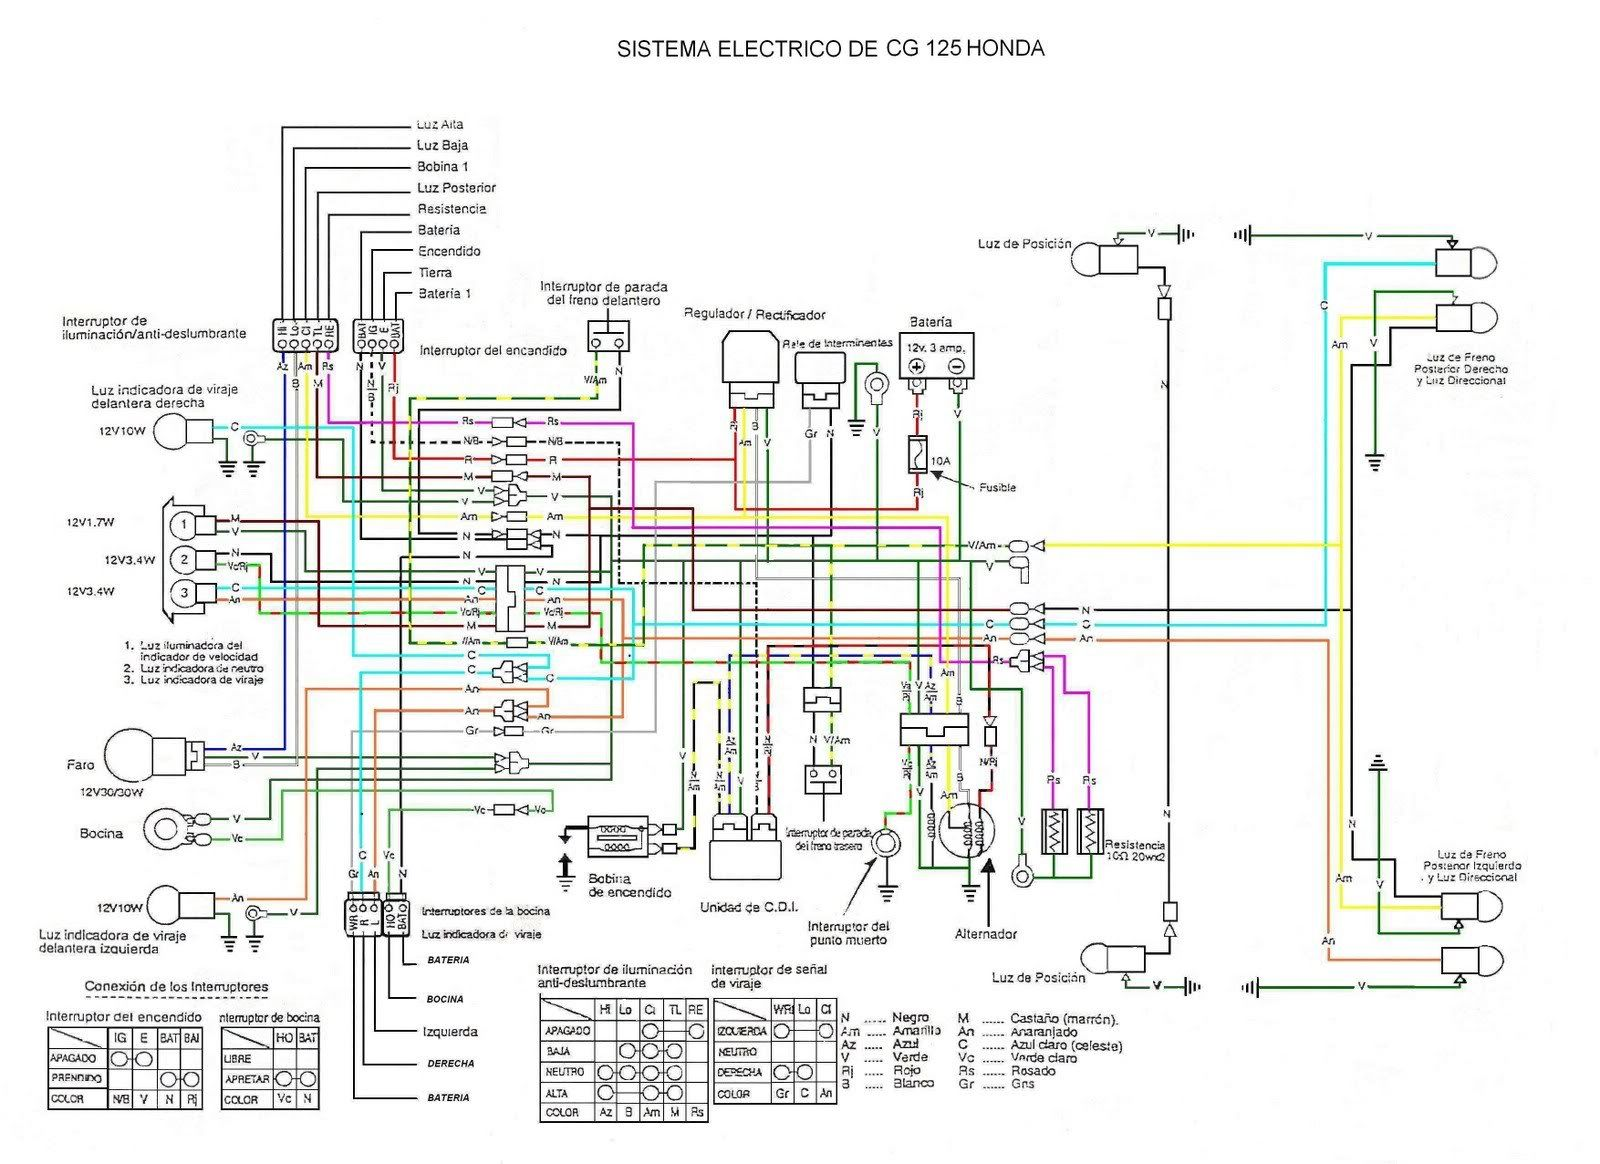 Diagrama O Sistema Elctrico De Motos Chinas Sistemas Electricos Electric Circuit Diagram Of Bike Electrical Engineering China Scrambler Cars And